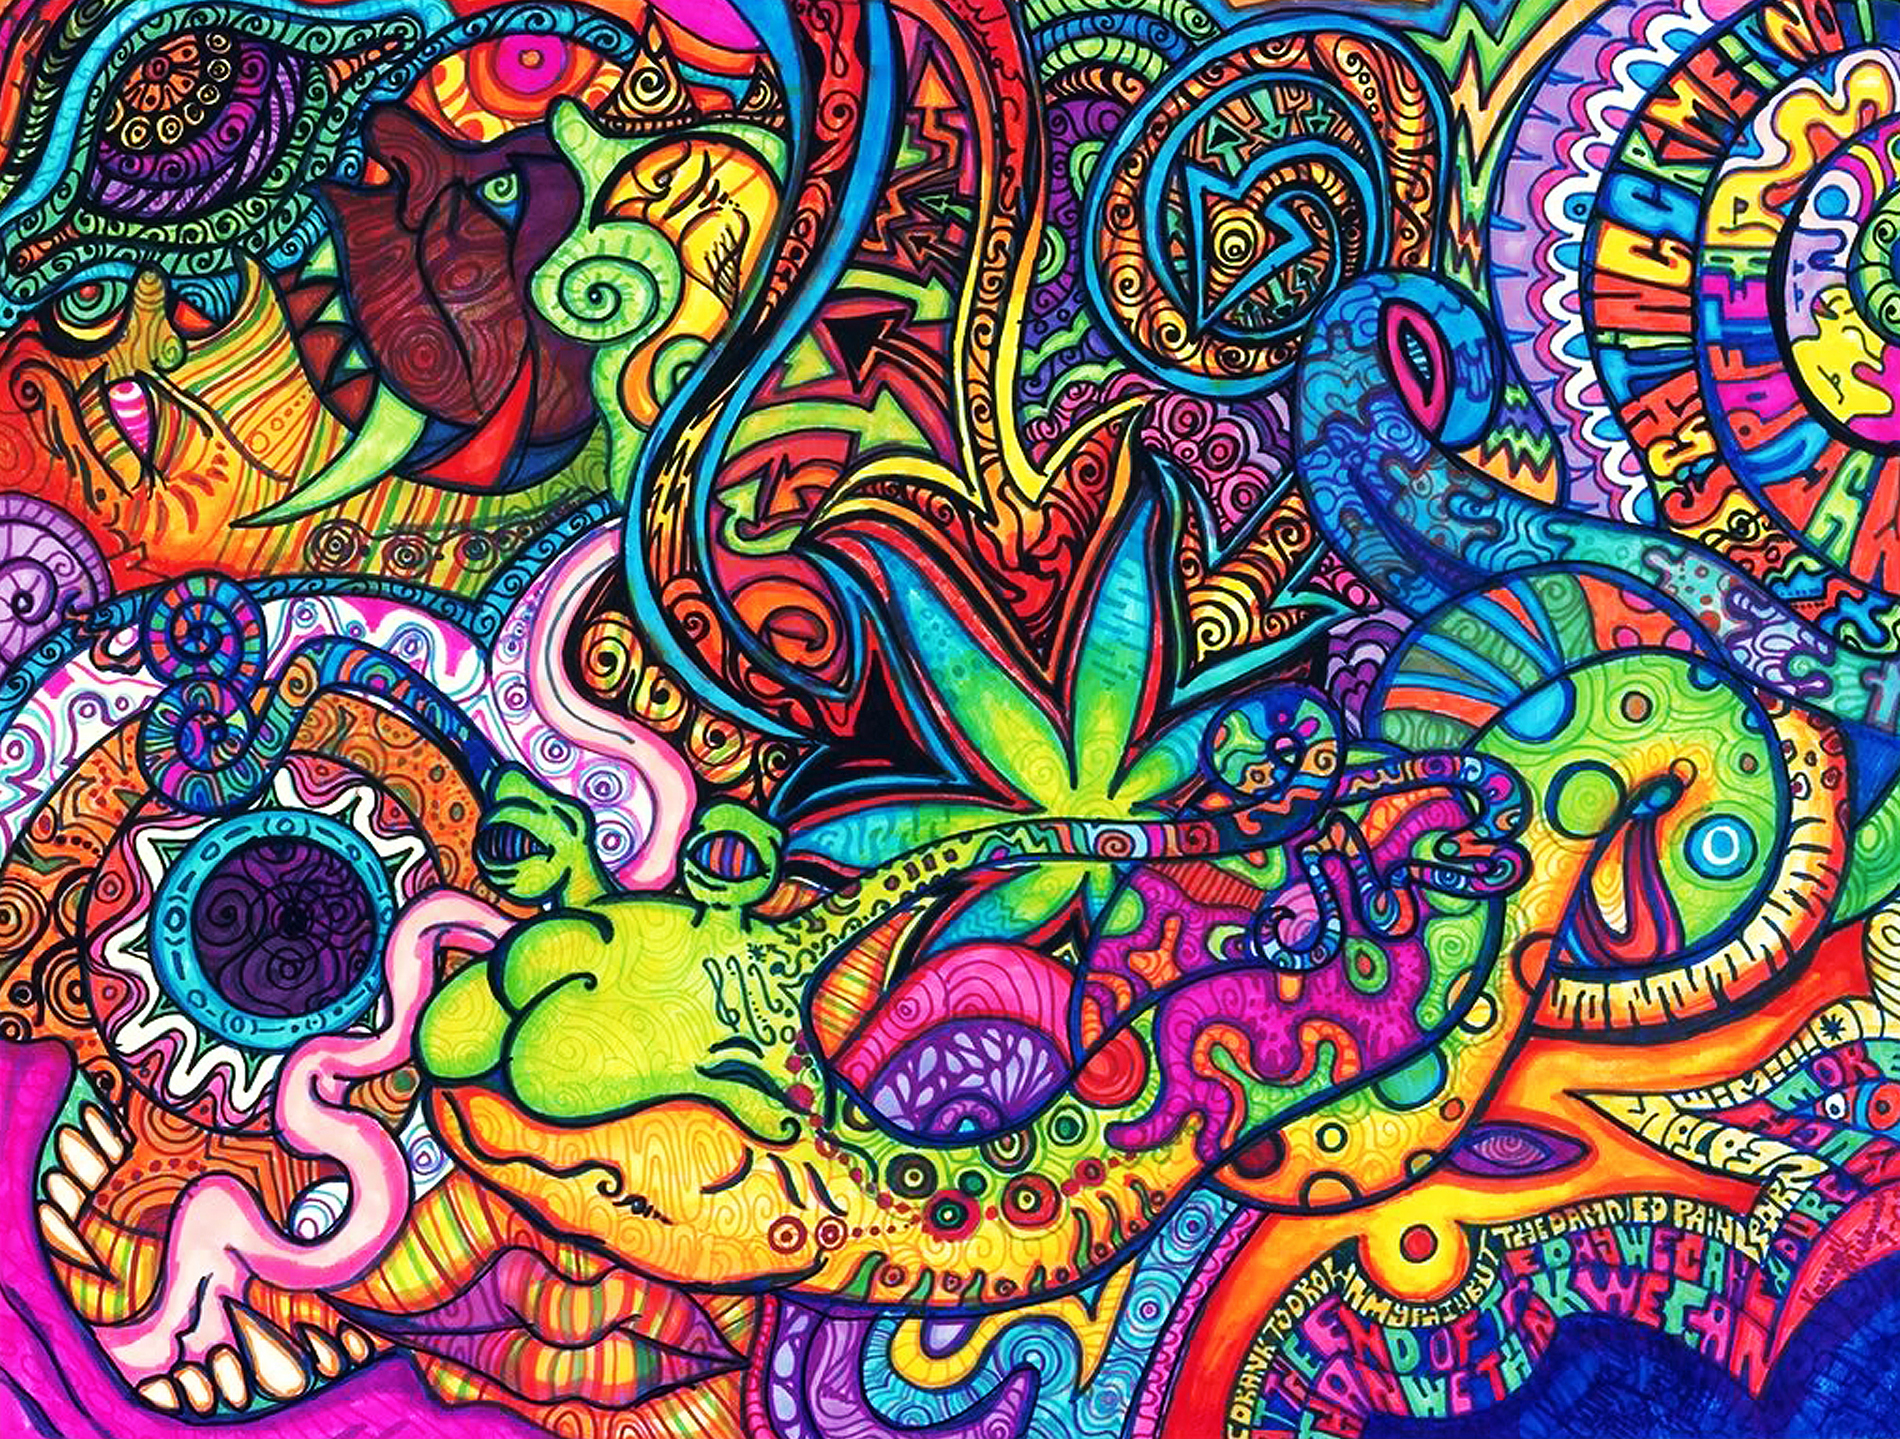 518 Psychedelic HD Wallpapers Background Images 1900x1439